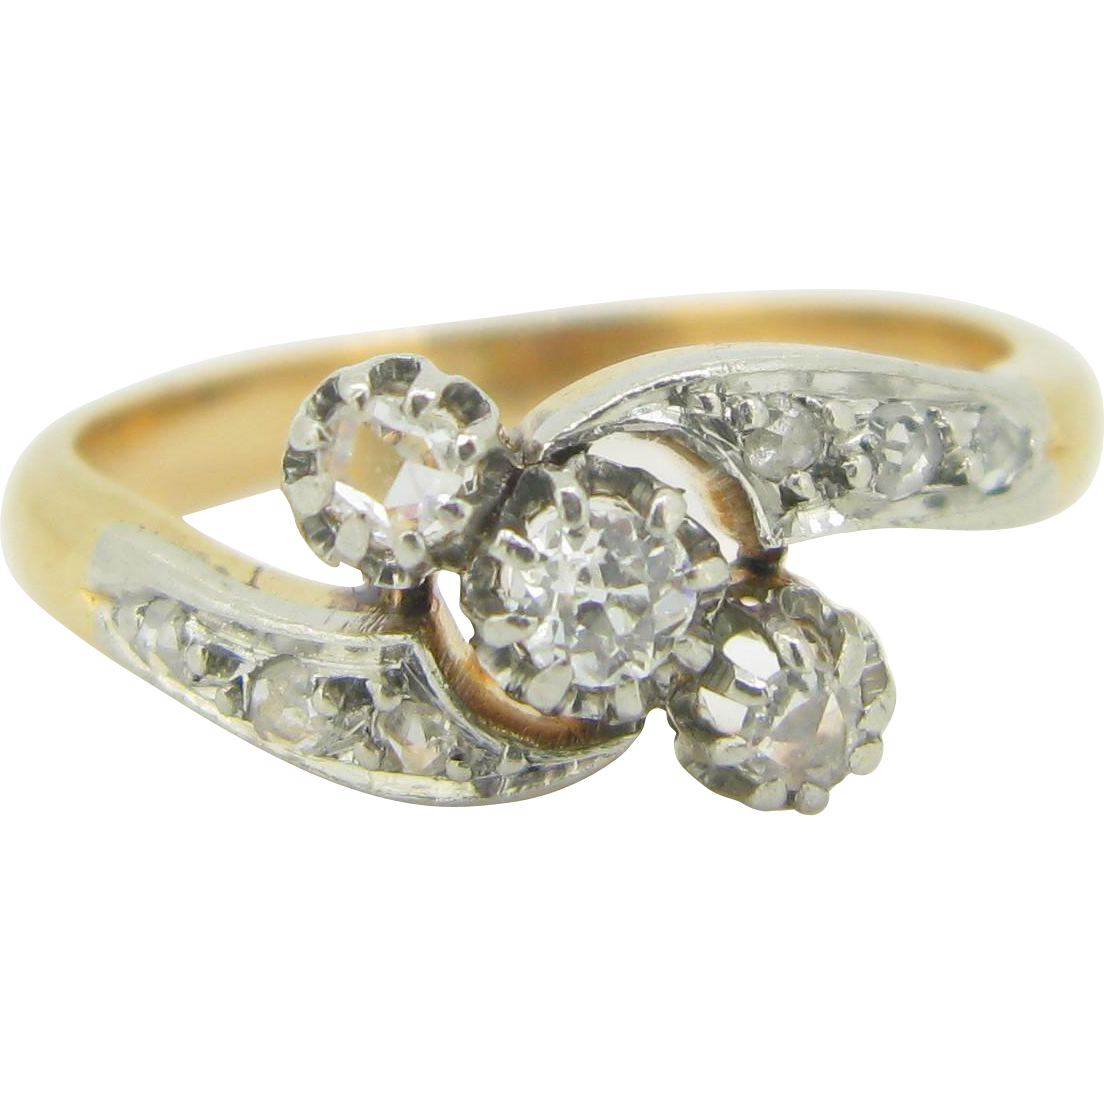 Lovely Edwardian diamonds ring, 18kt gold and platinum~ c.1910